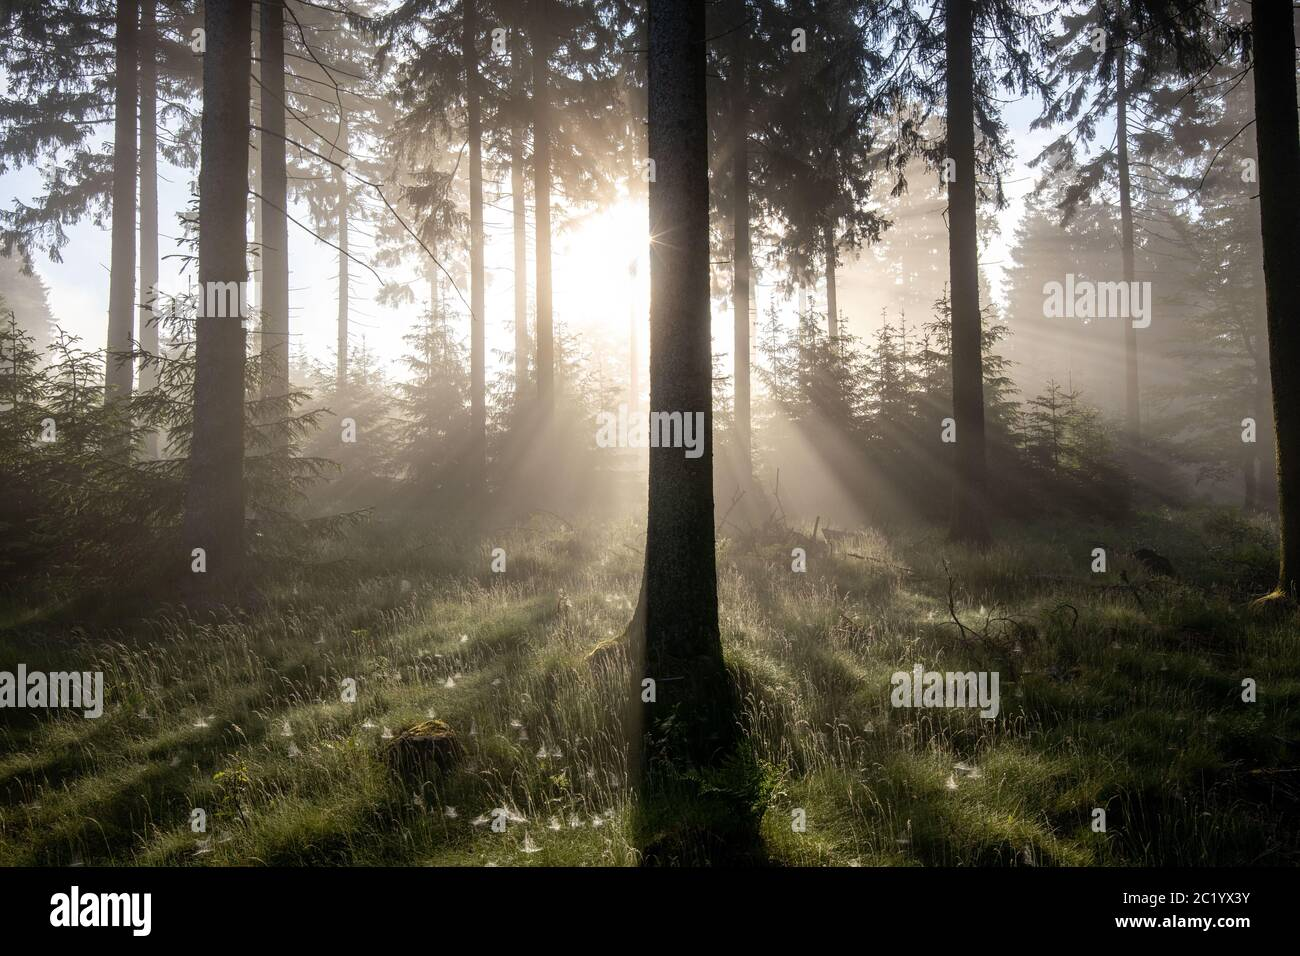 Schwithten, Deutschland. 12th June, 2020. 06/12/2020, Schwithten (Hessen): The rising sun shines through trees in the fog in the forest on the Grosser Feldberg in the Taunus. | usage worldwide Credit: dpa/Alamy Live News Stock Photo